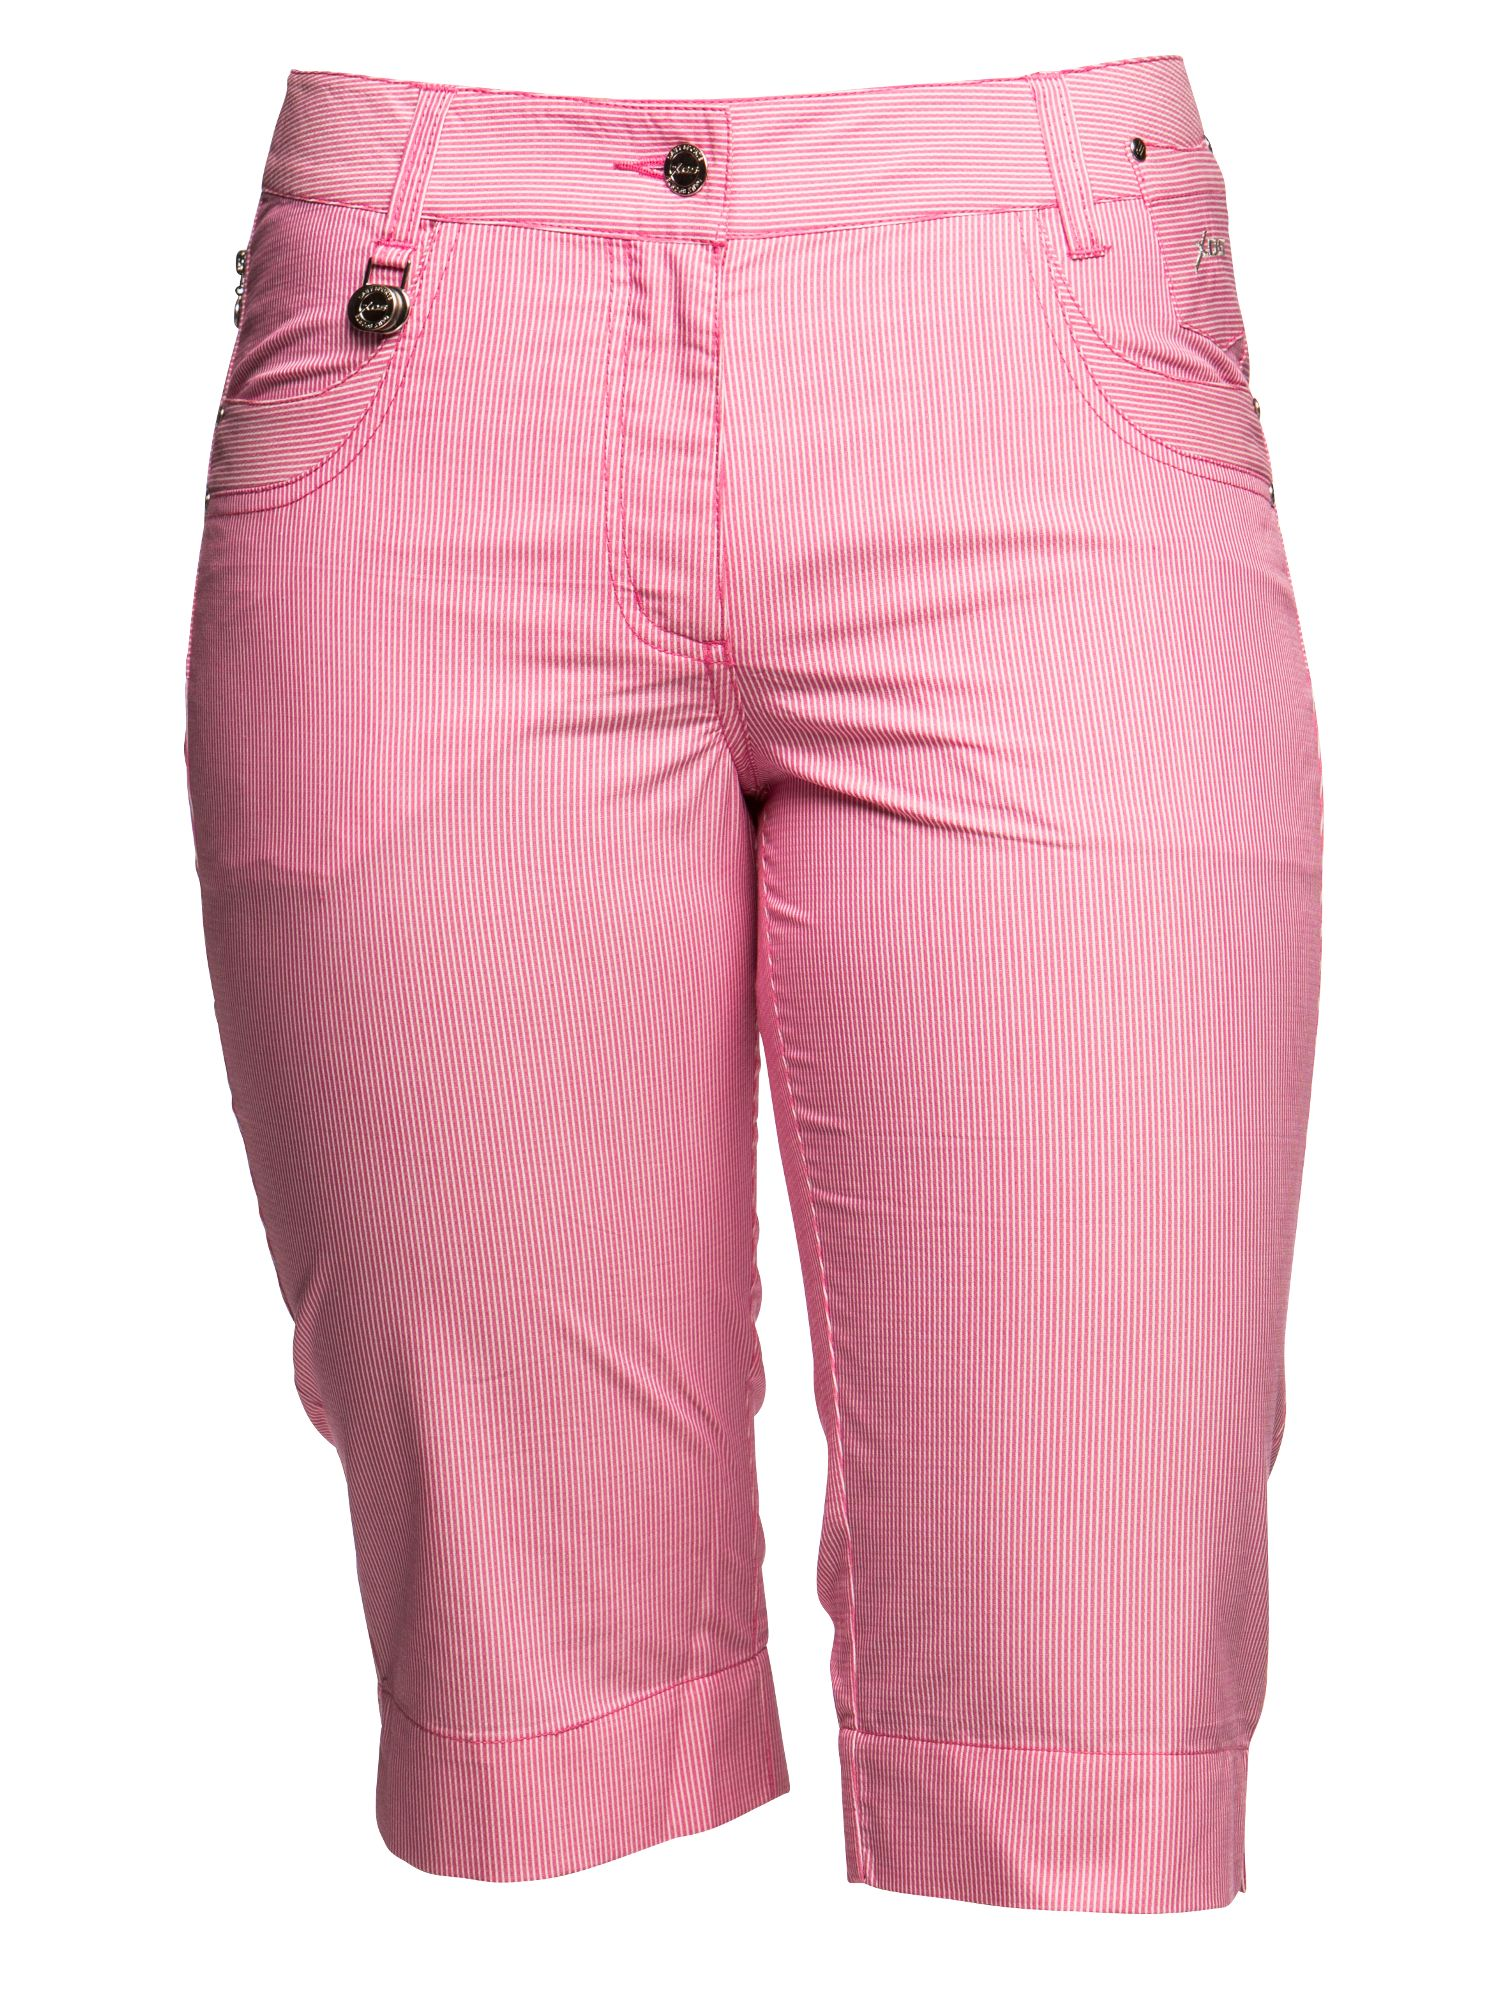 Daily Sports Daily Sports Lia short, Pink